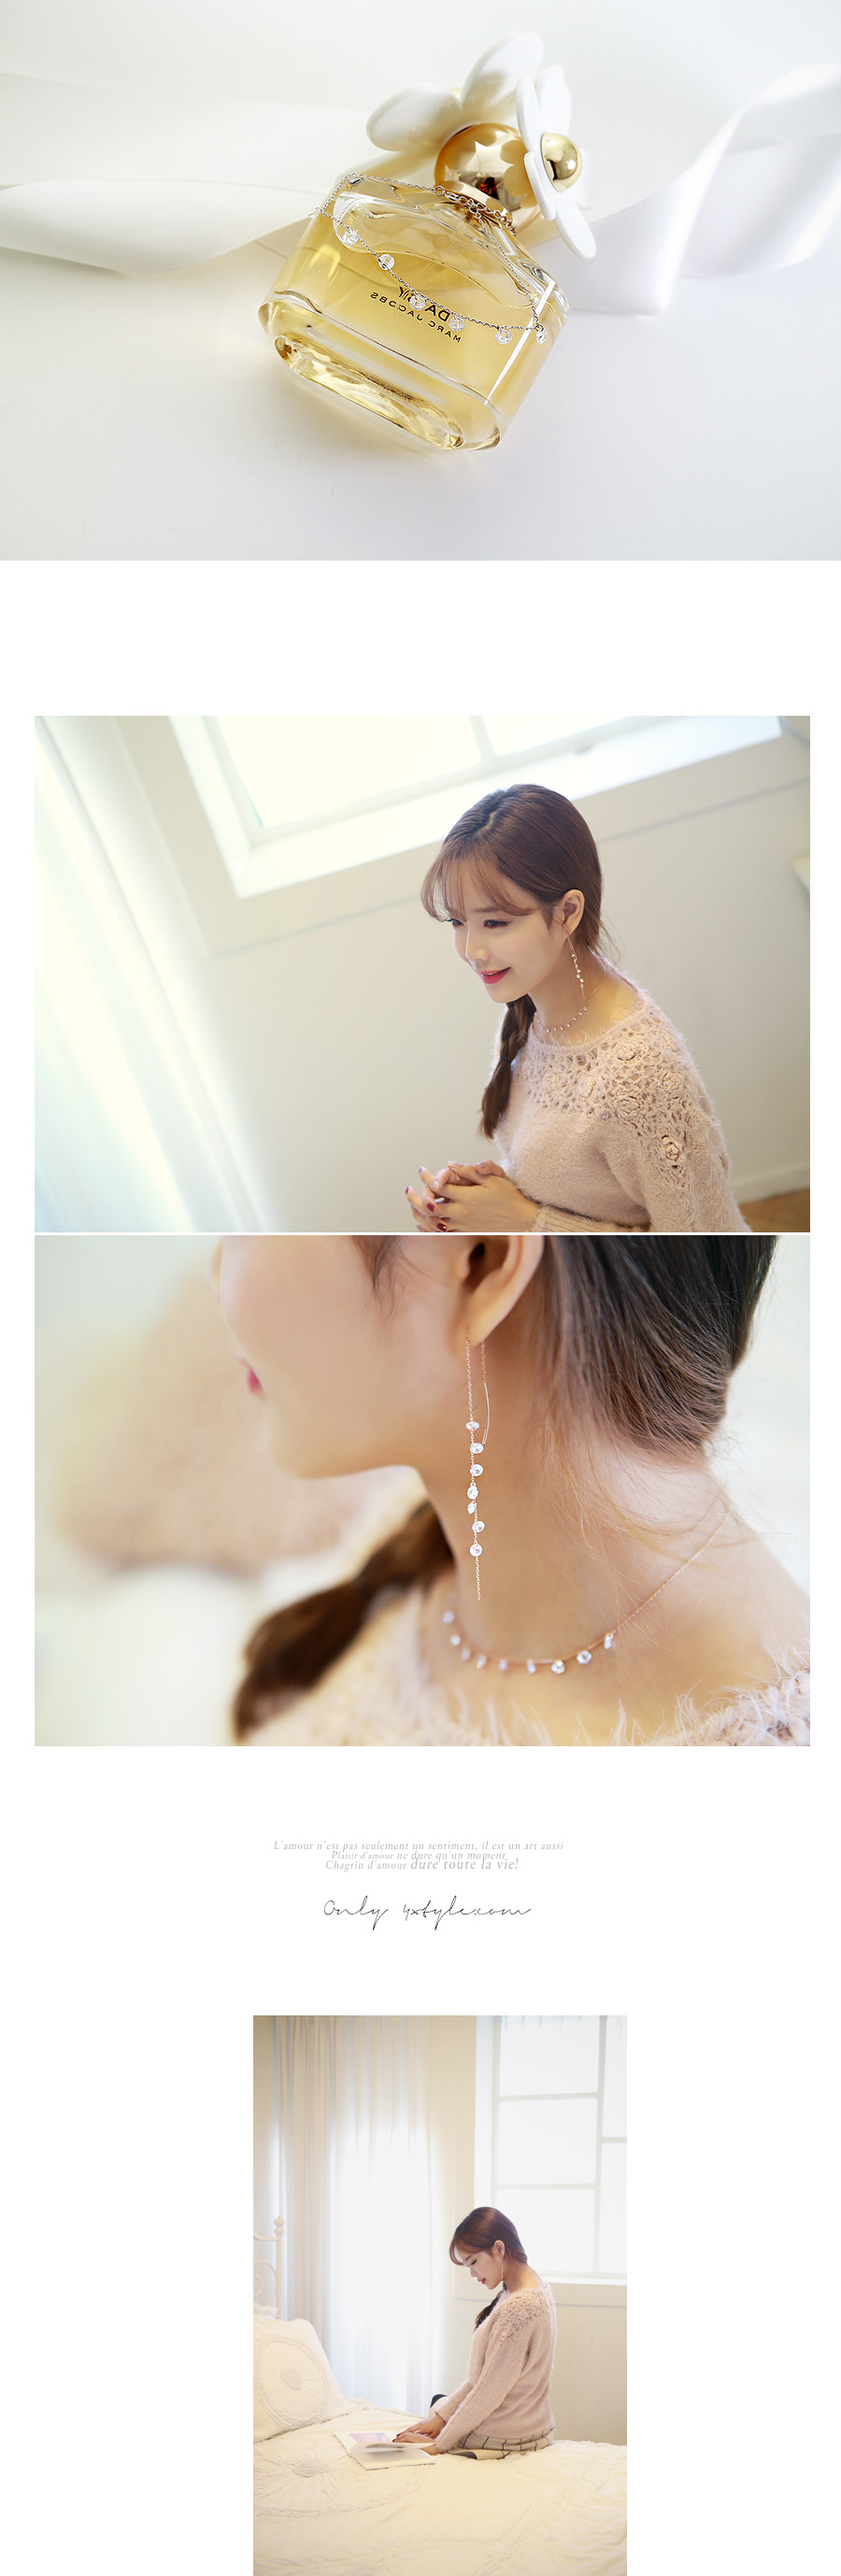 [ 4xtyle ] Crystal Bolero Silve Necklace, 2 Colors